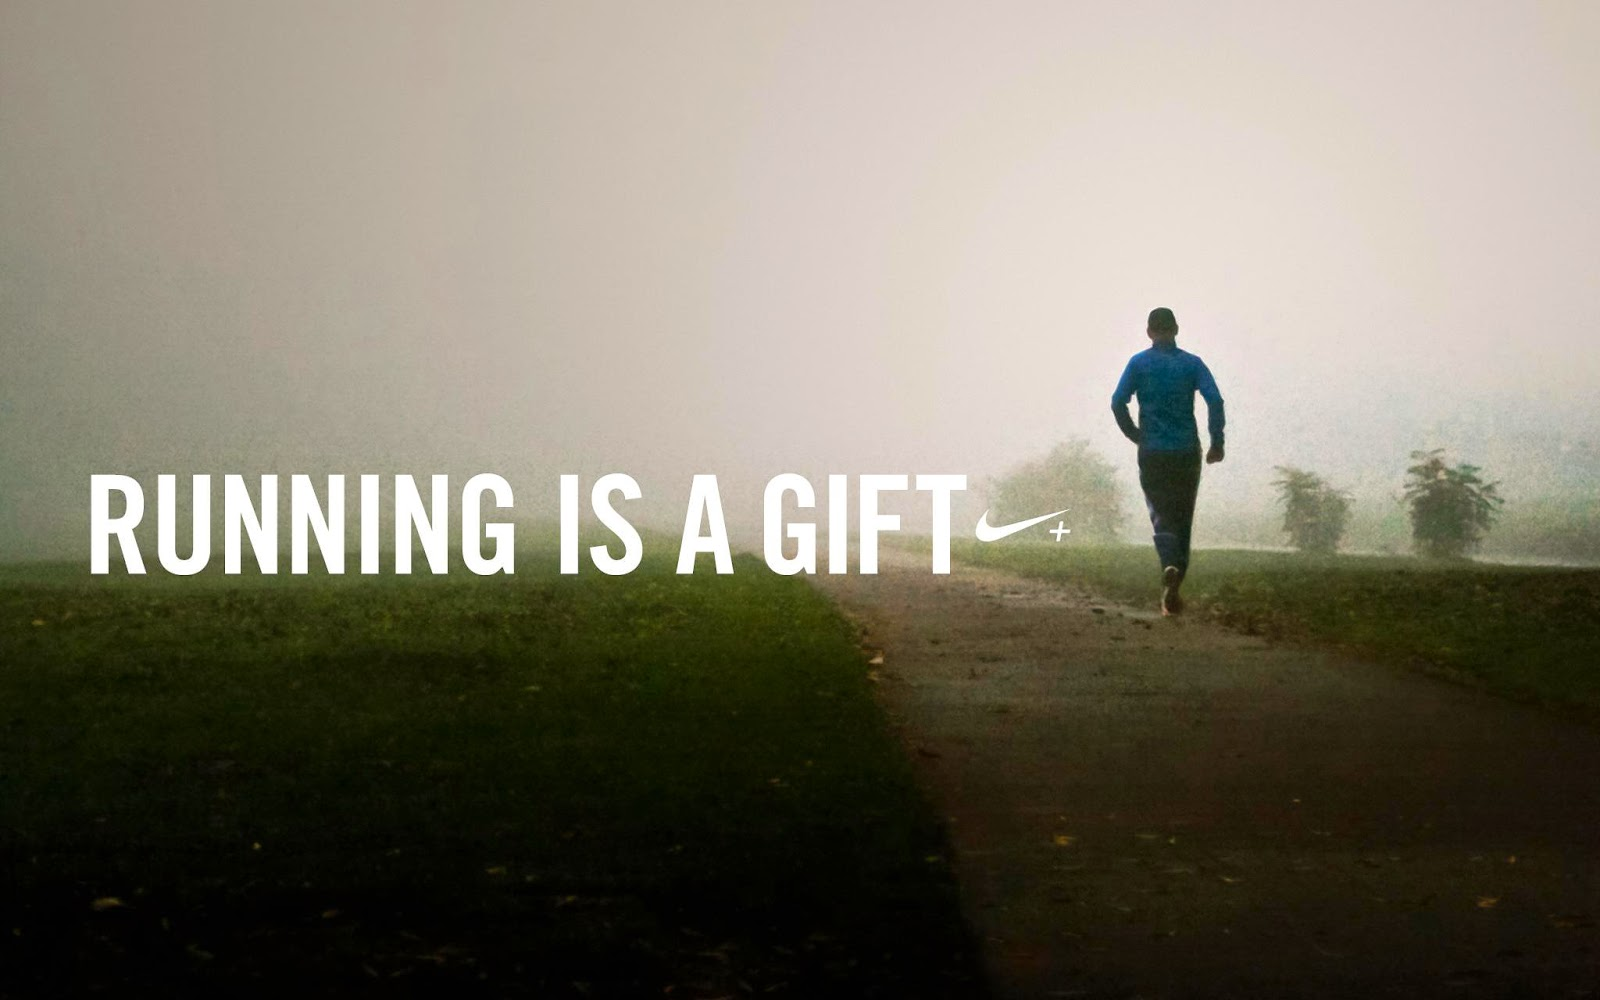 nike running quotes wallpaper nike running quotes health wallpaper fashion  s feel